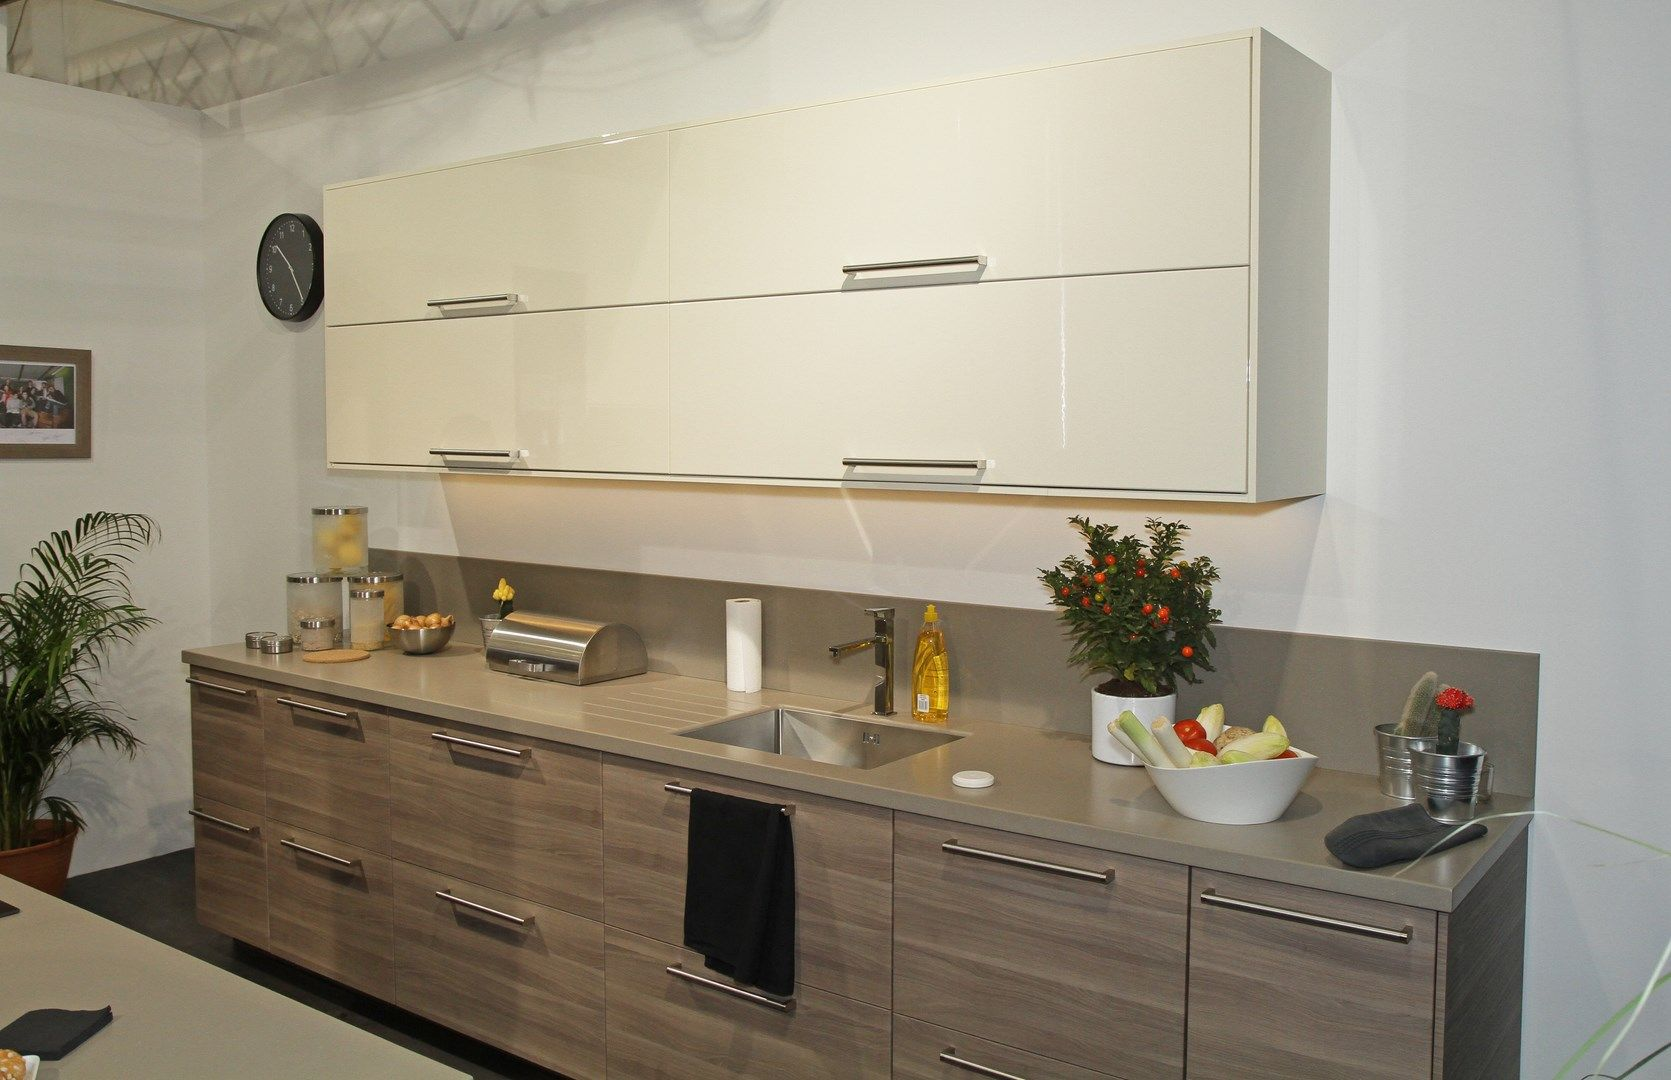 Erstaunlich single wall kitchen ikea brokhult - Google Search | Küchen  XY43